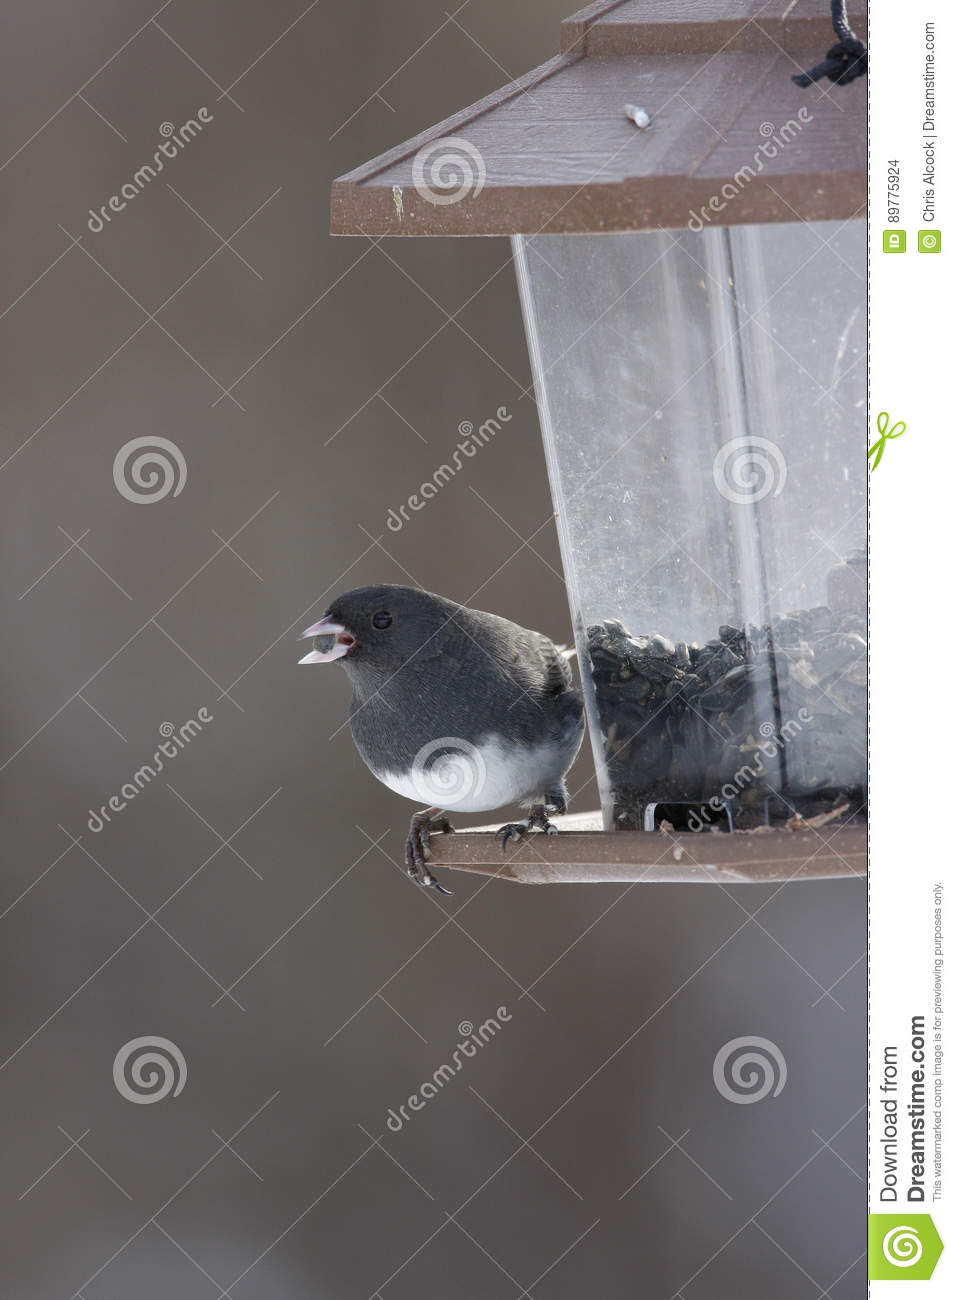 Junco eyed obscuridade